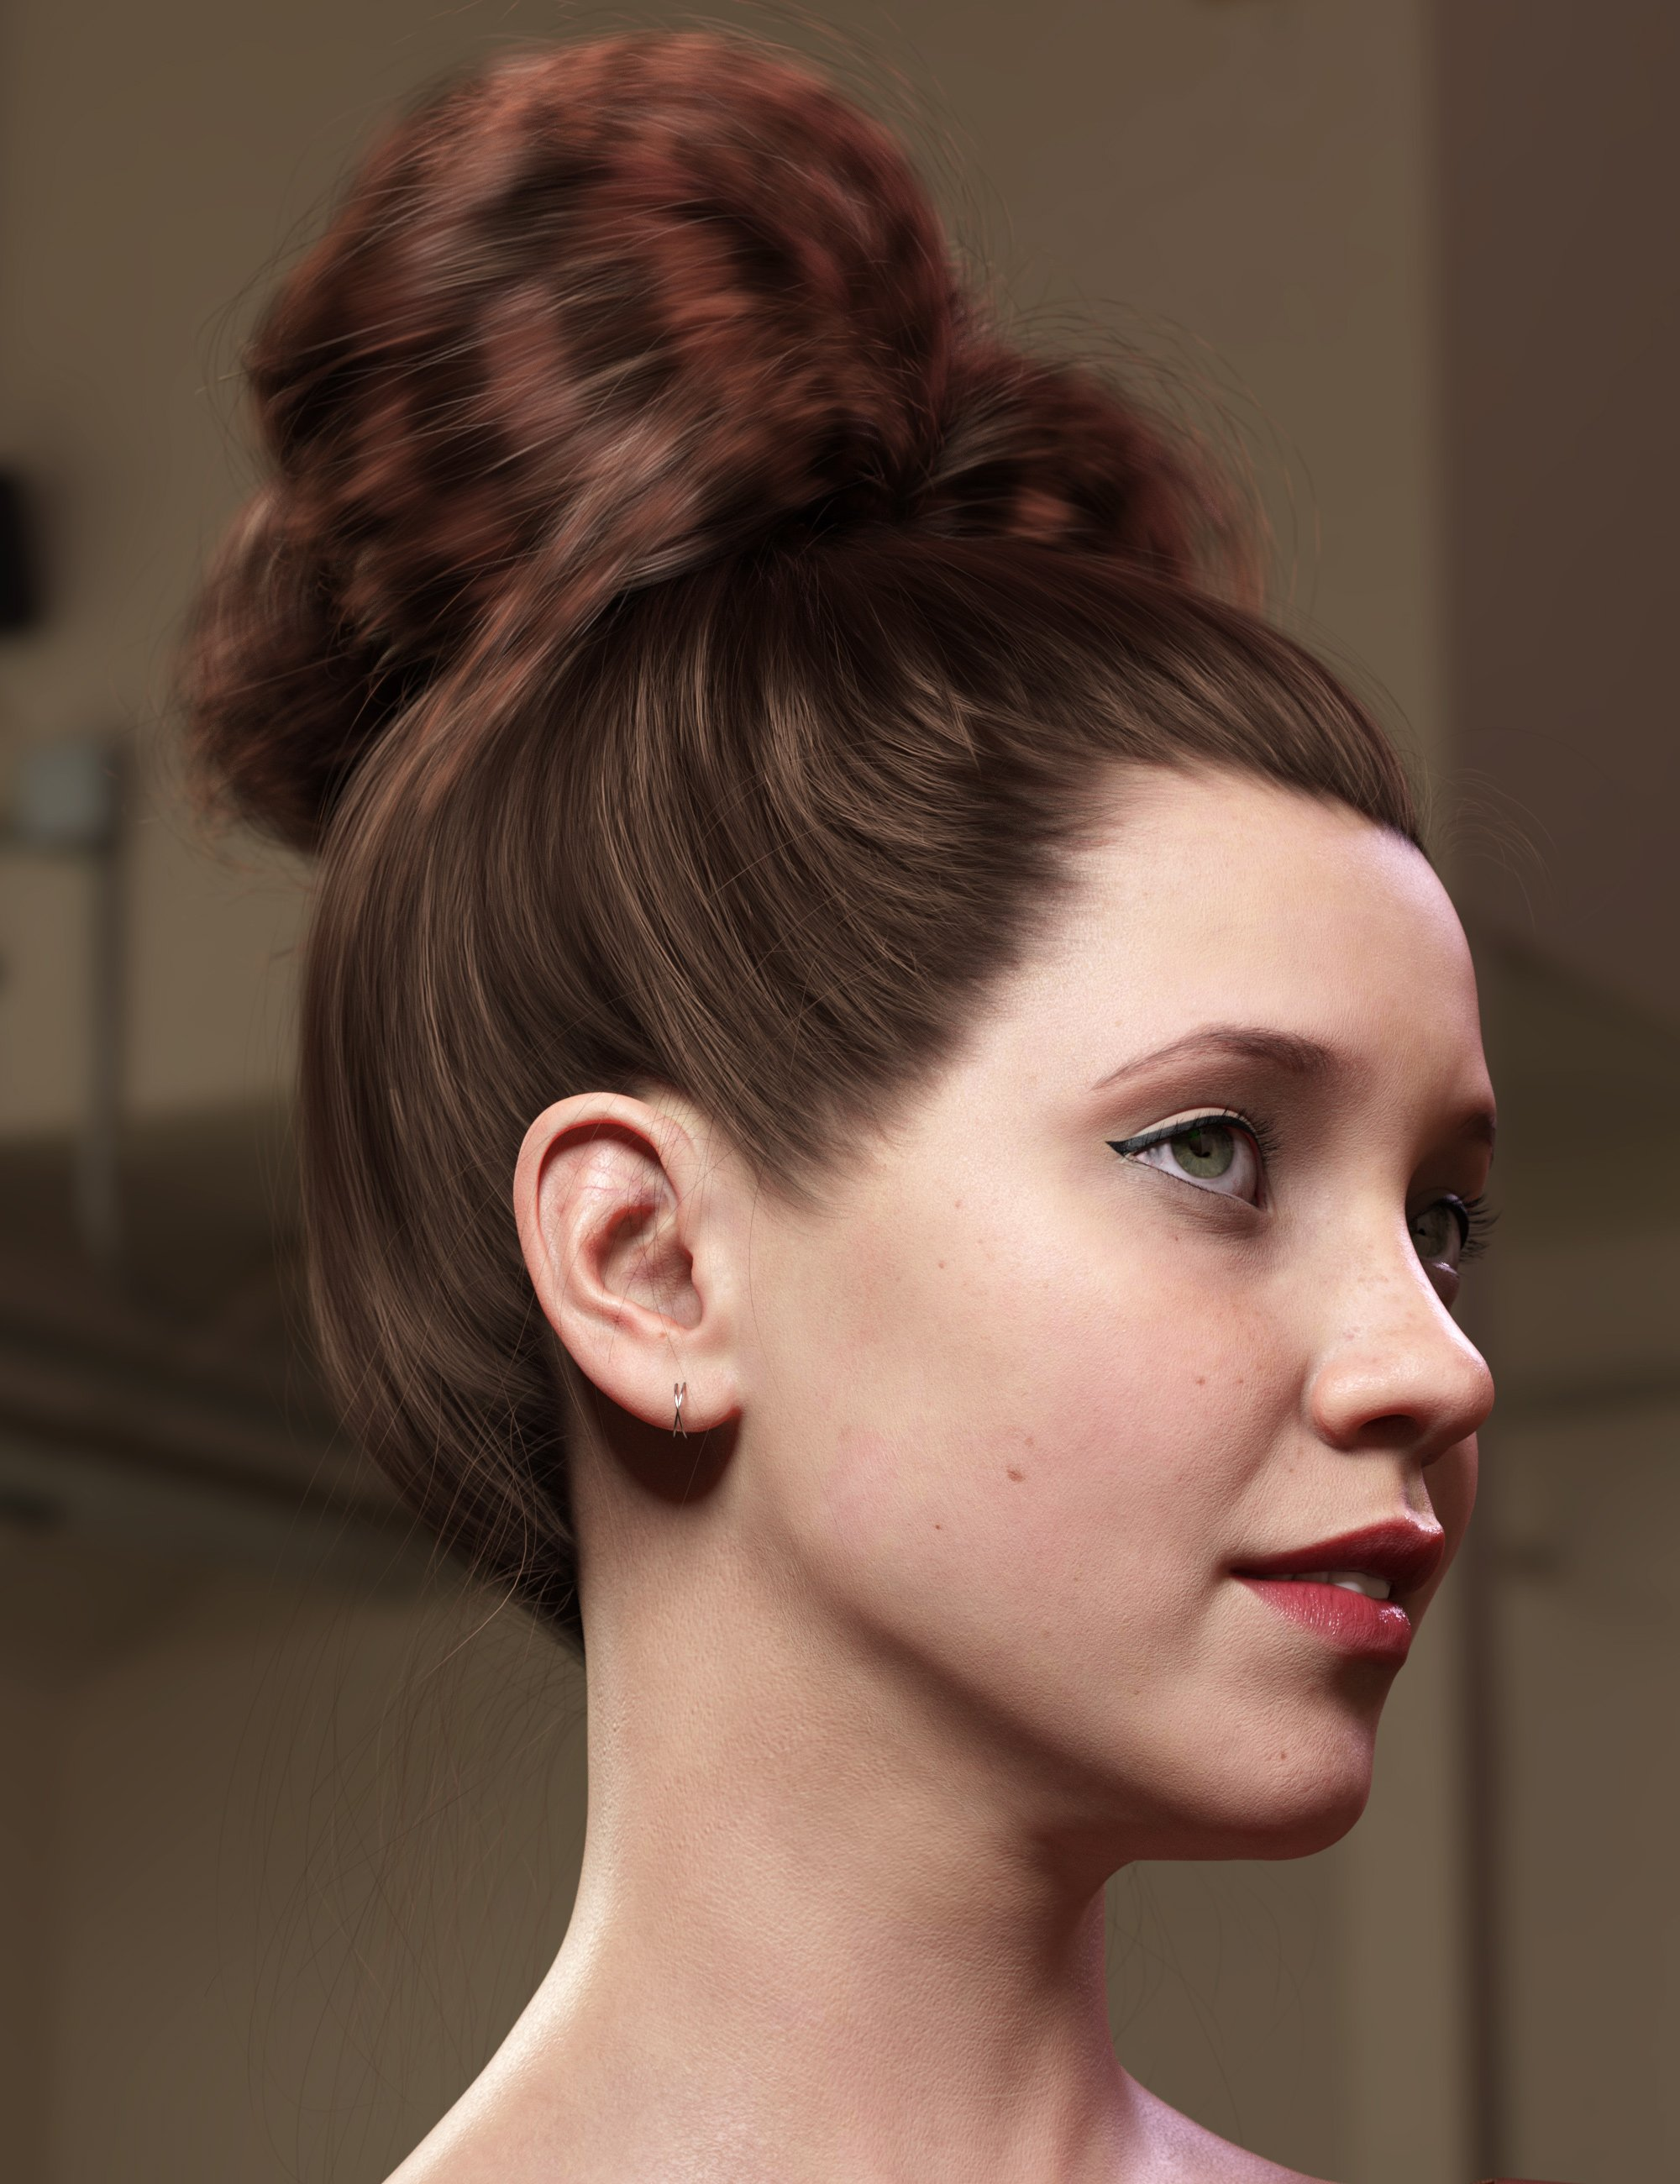 Texture Expansion for Top Updo Hair by: outoftouch, 3D Models by Daz 3D